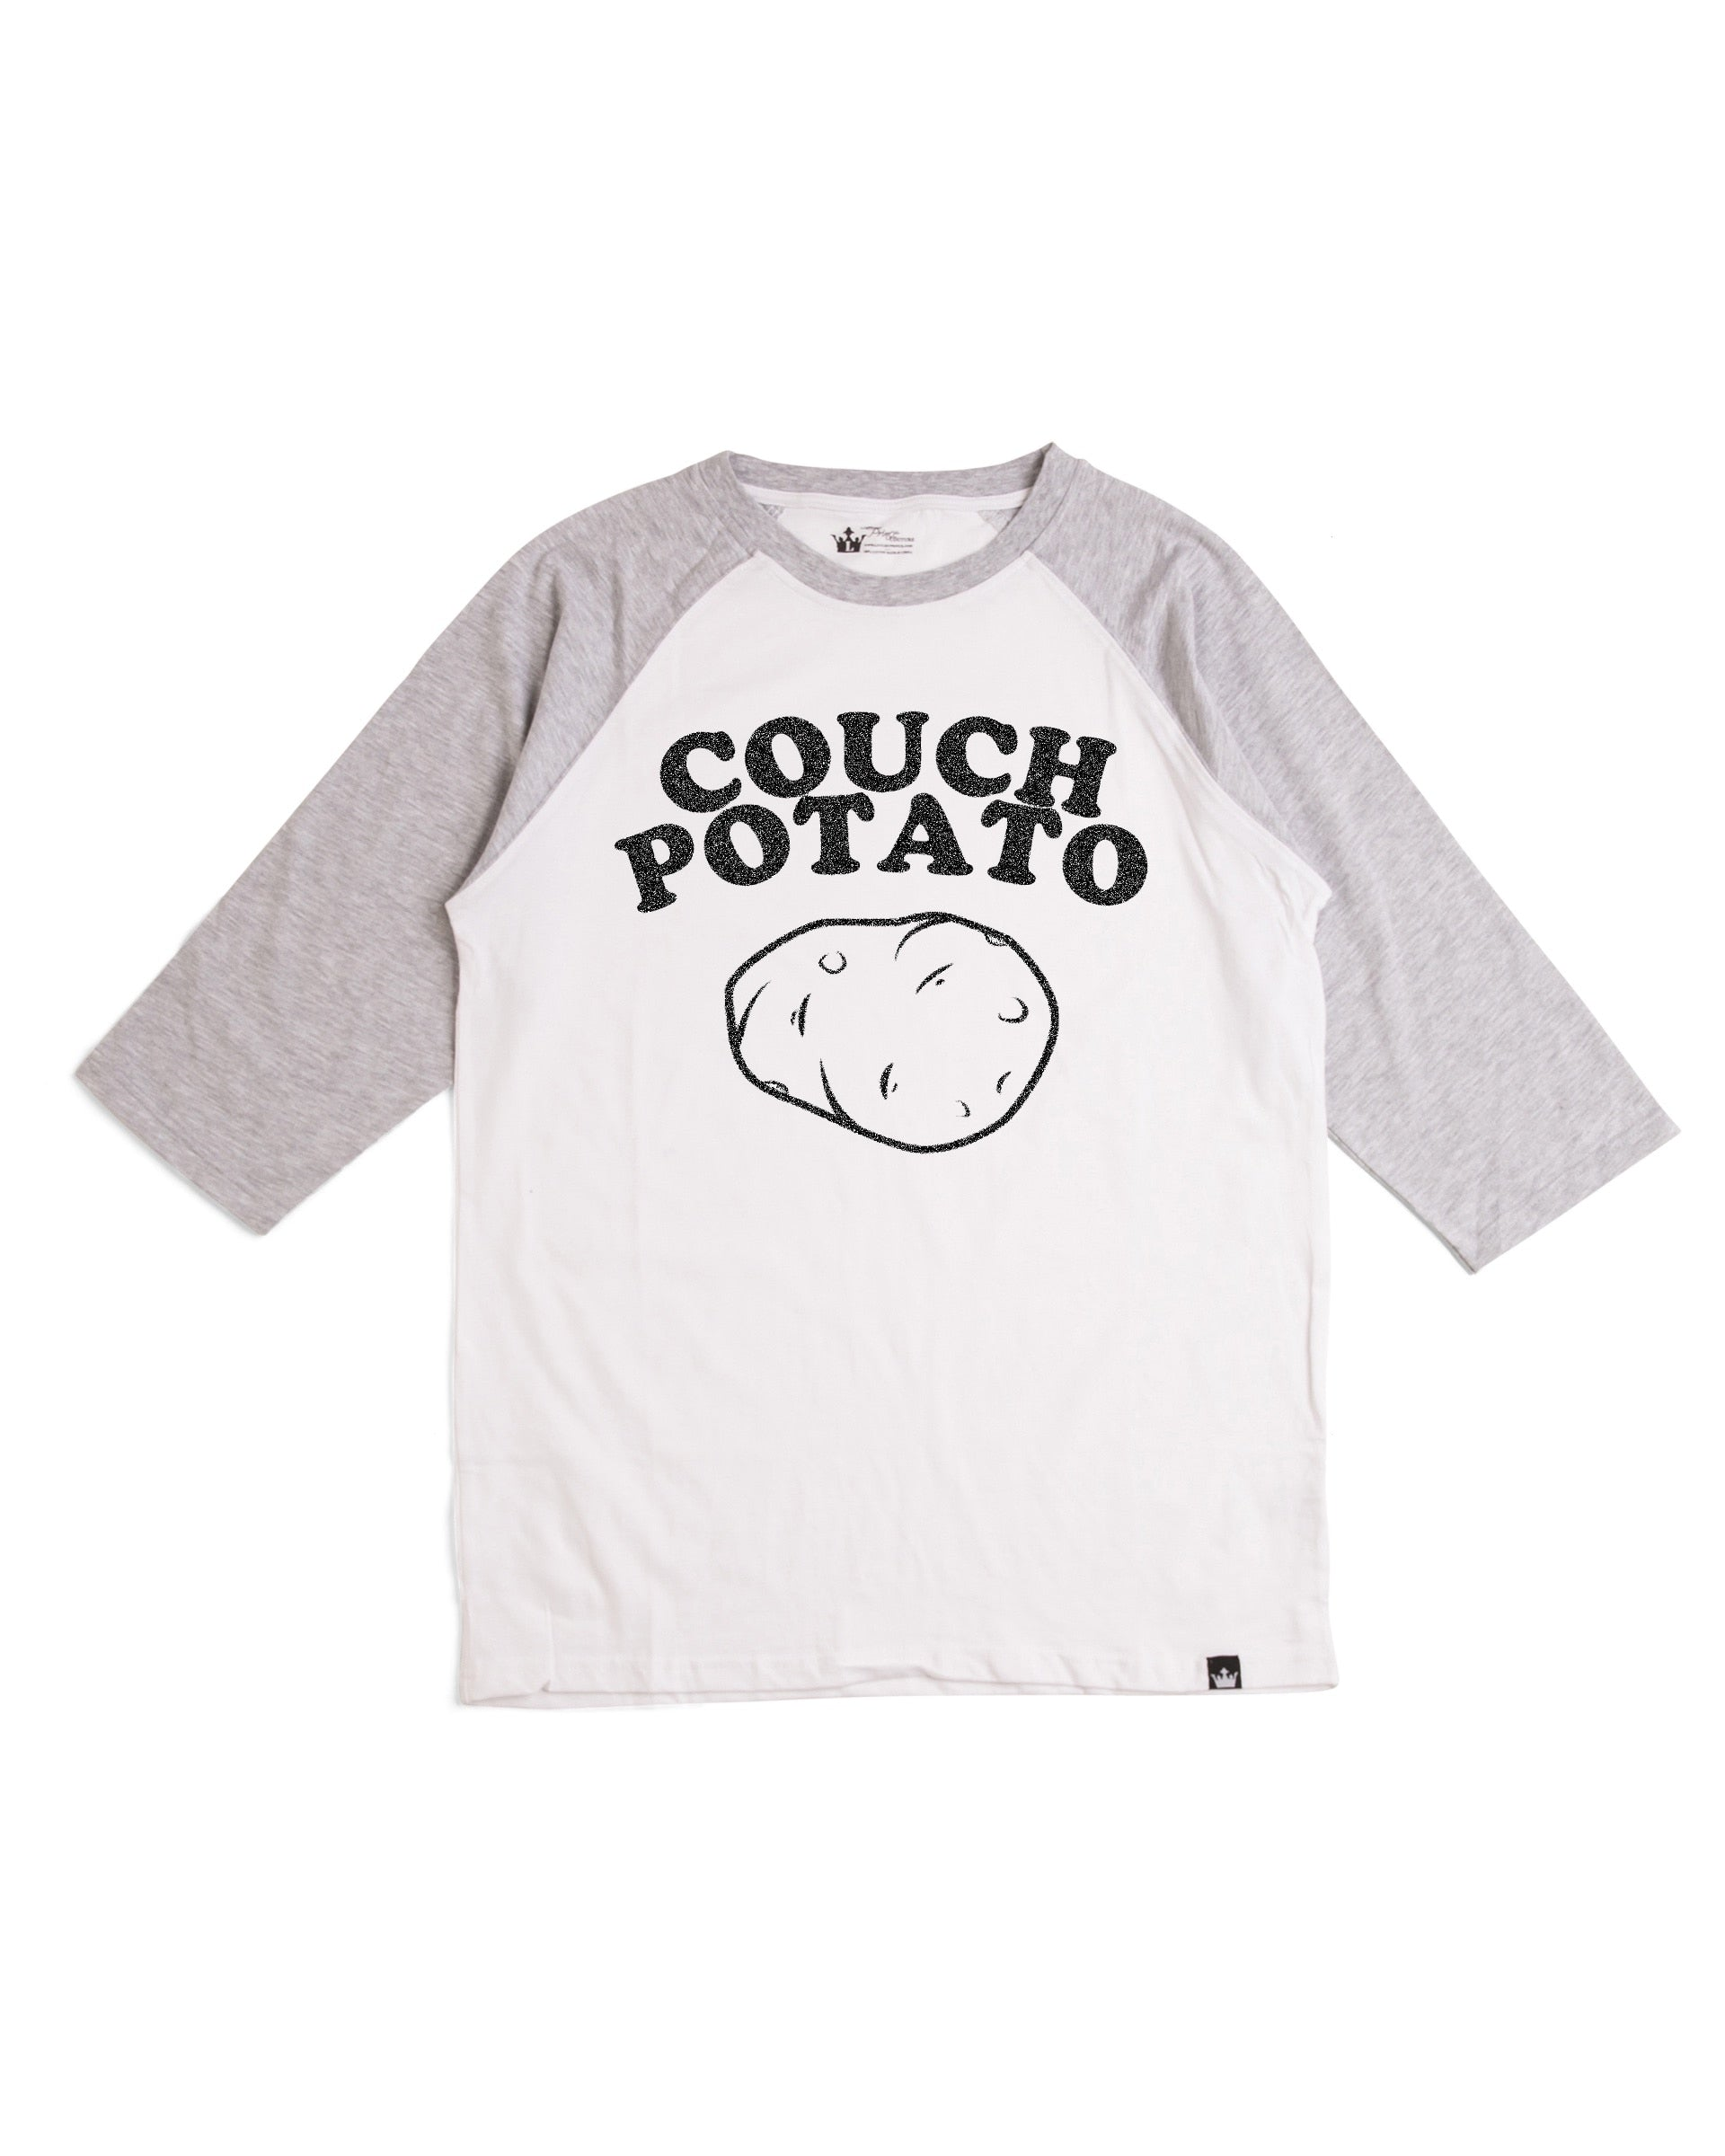 fdm-cp-ghsr-couch-potato-gray-white-half-sleeve-mens-raglan-shirt.jpg